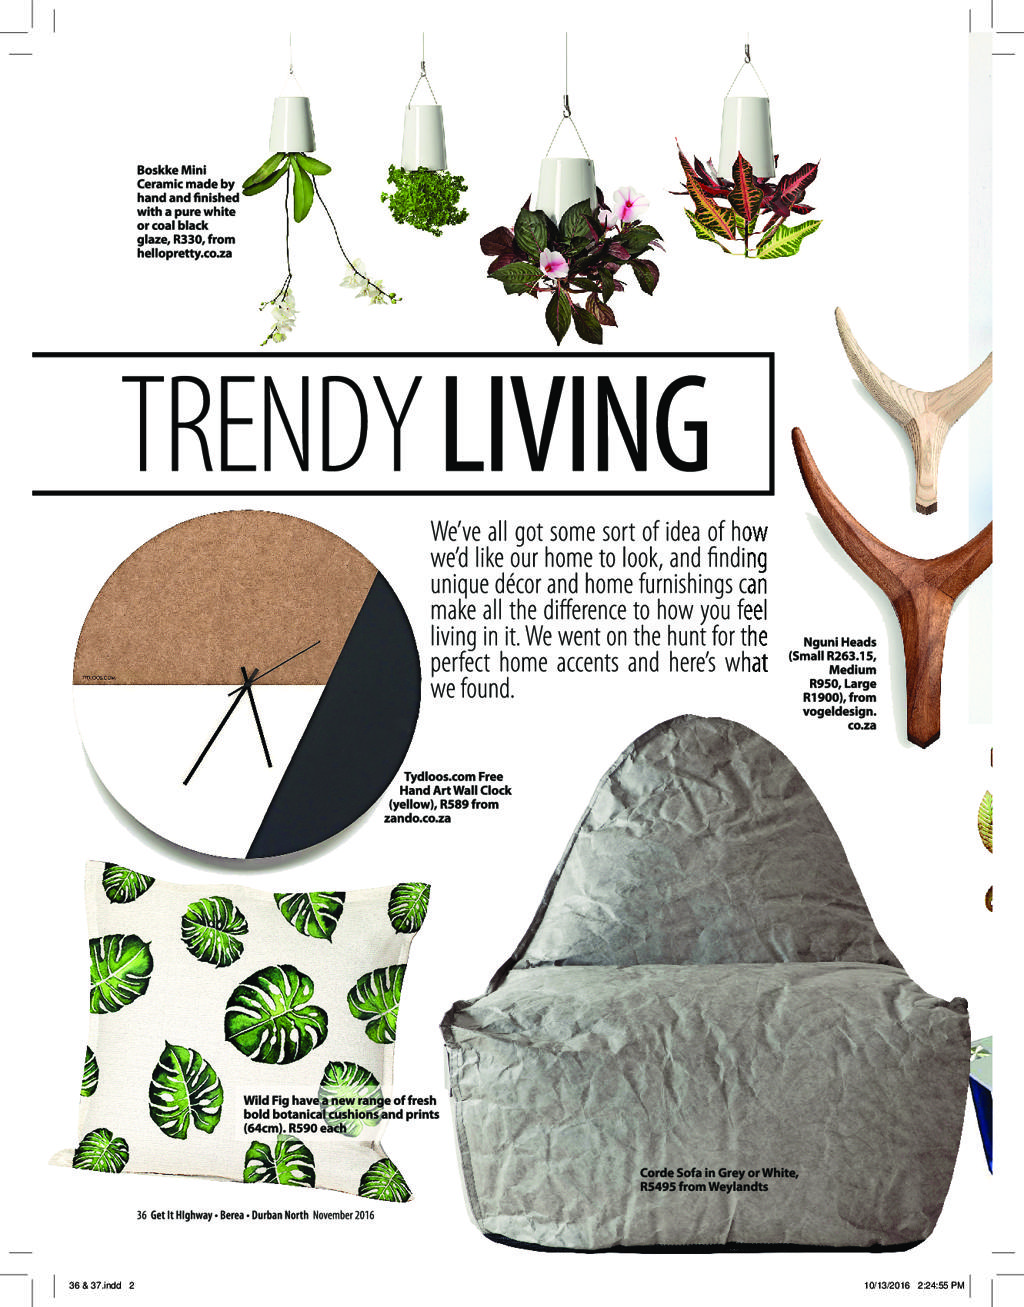 durban-get-it-magazine-november-2016-epapers-page-38